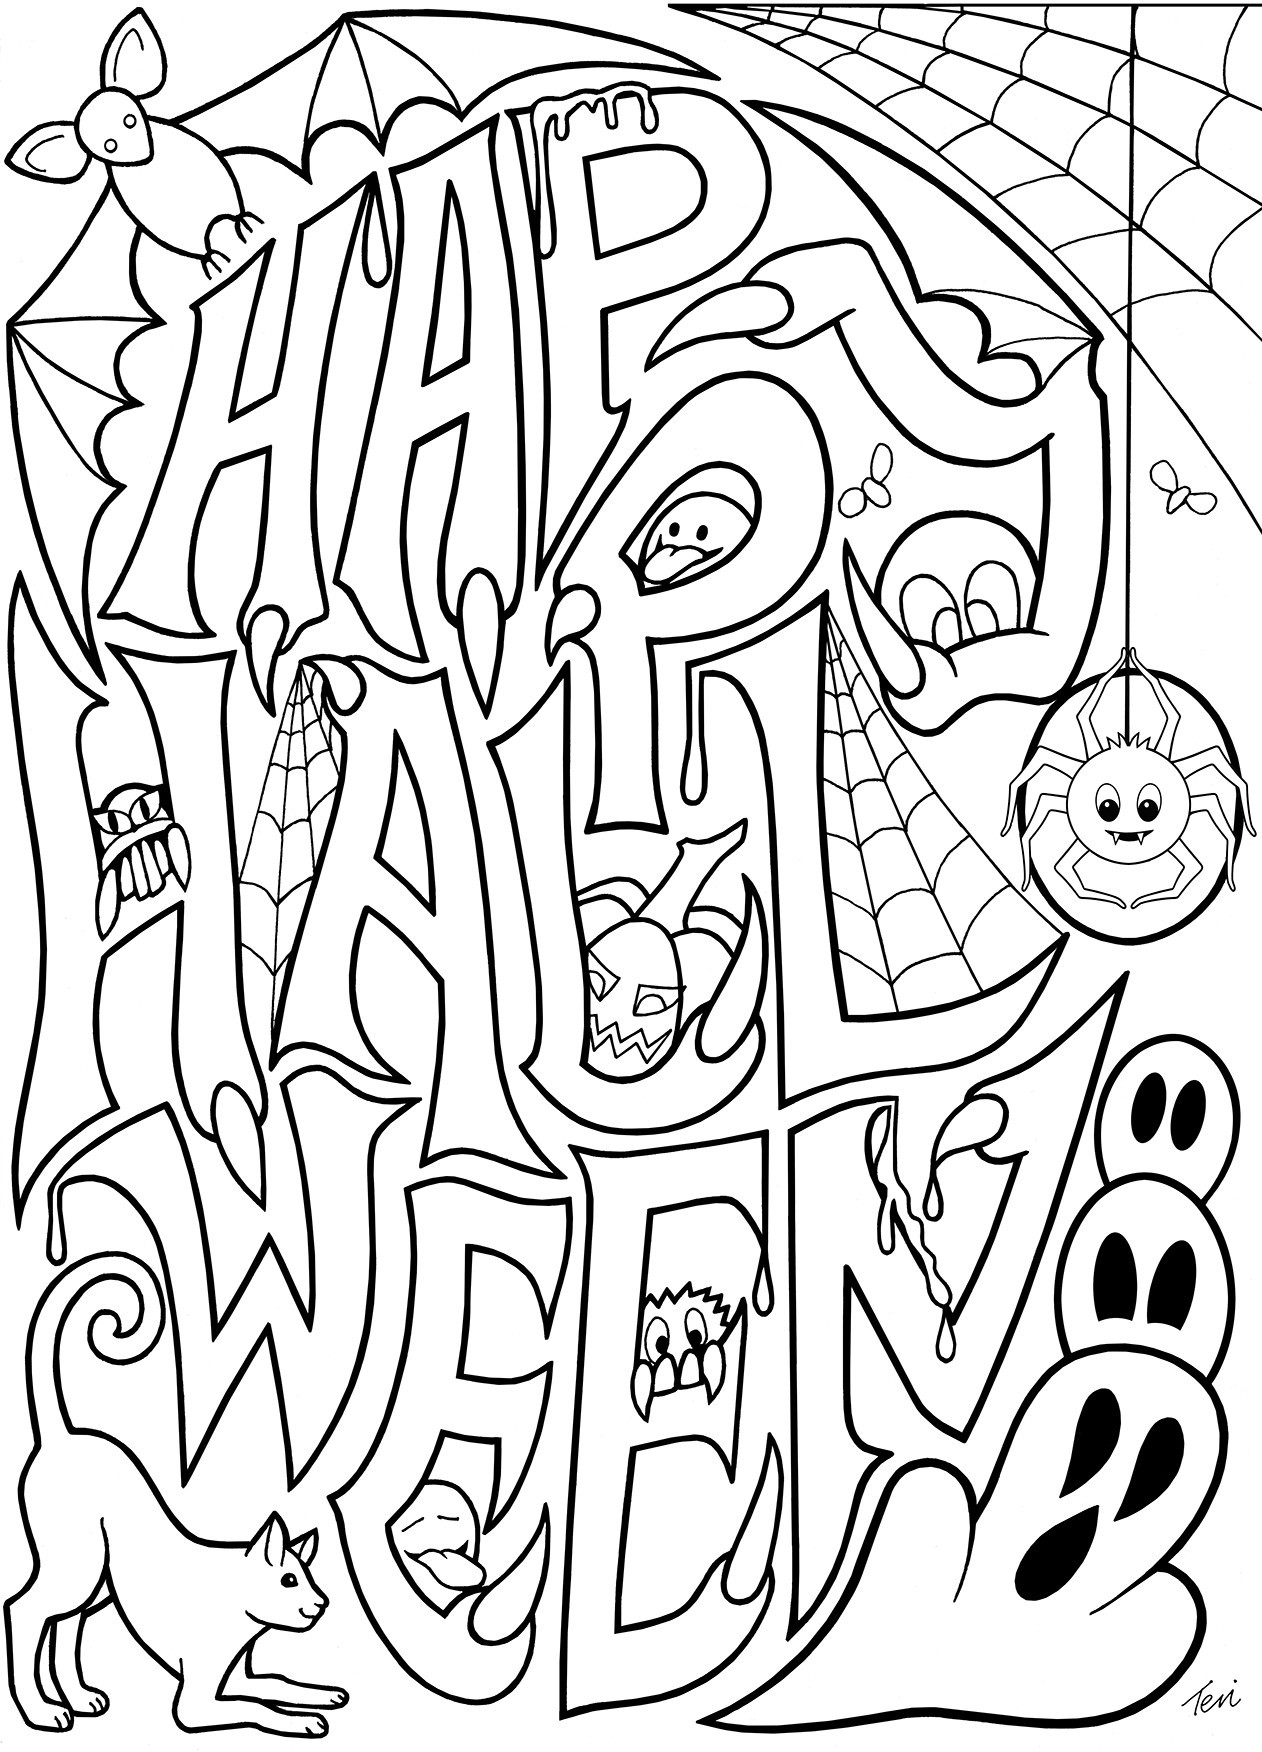 Halloween Math Coloring Worksheets Math Worksheet Coloring Books Free Printableween Children